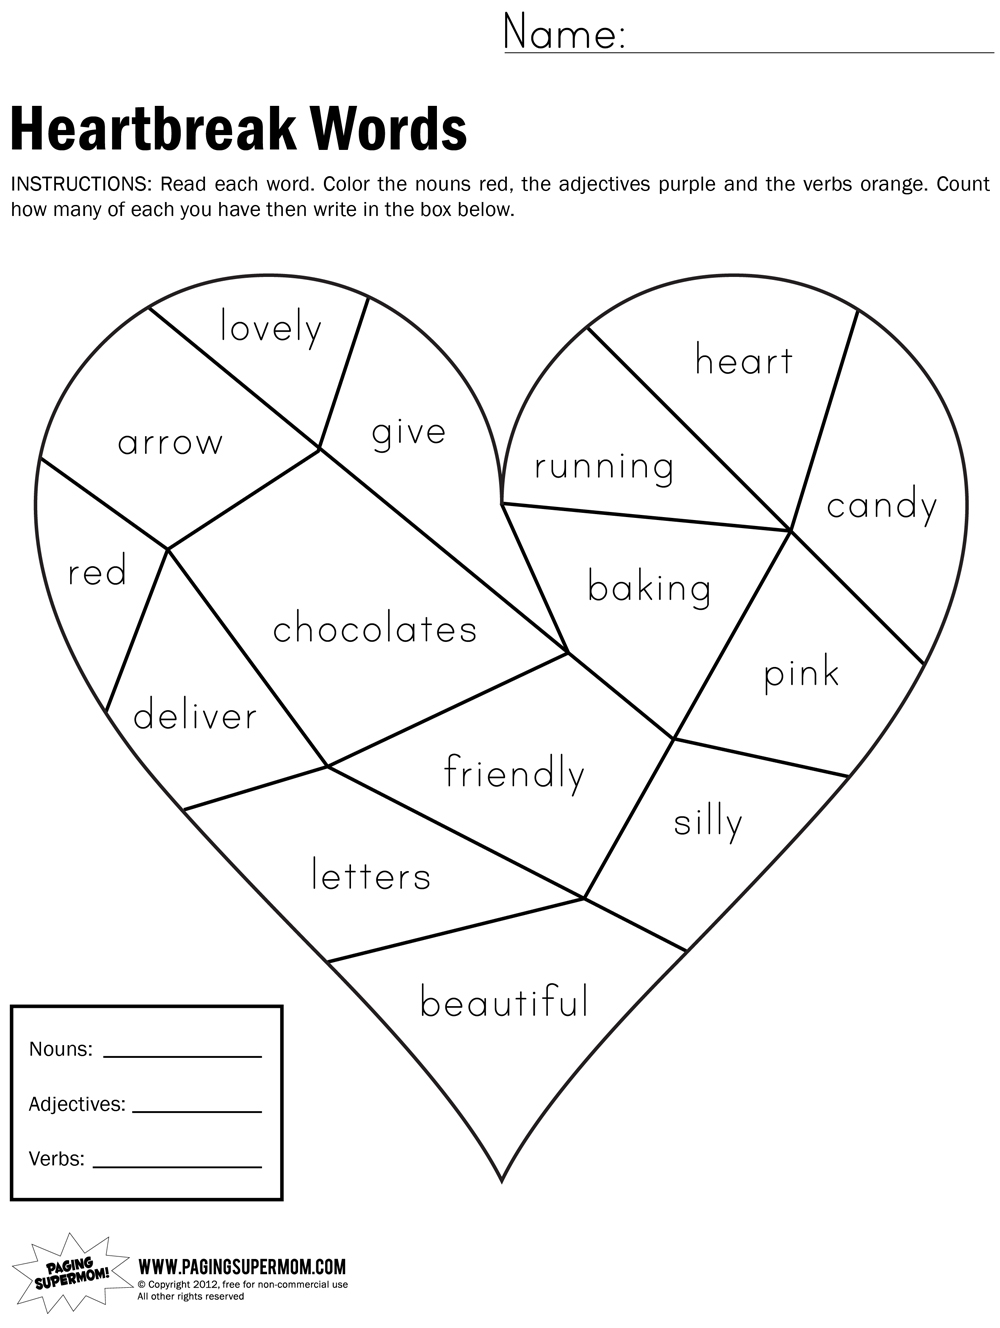 Math Worksheets To Print For 2Nd Graders – Math Worksheets for 5th Grade to Print